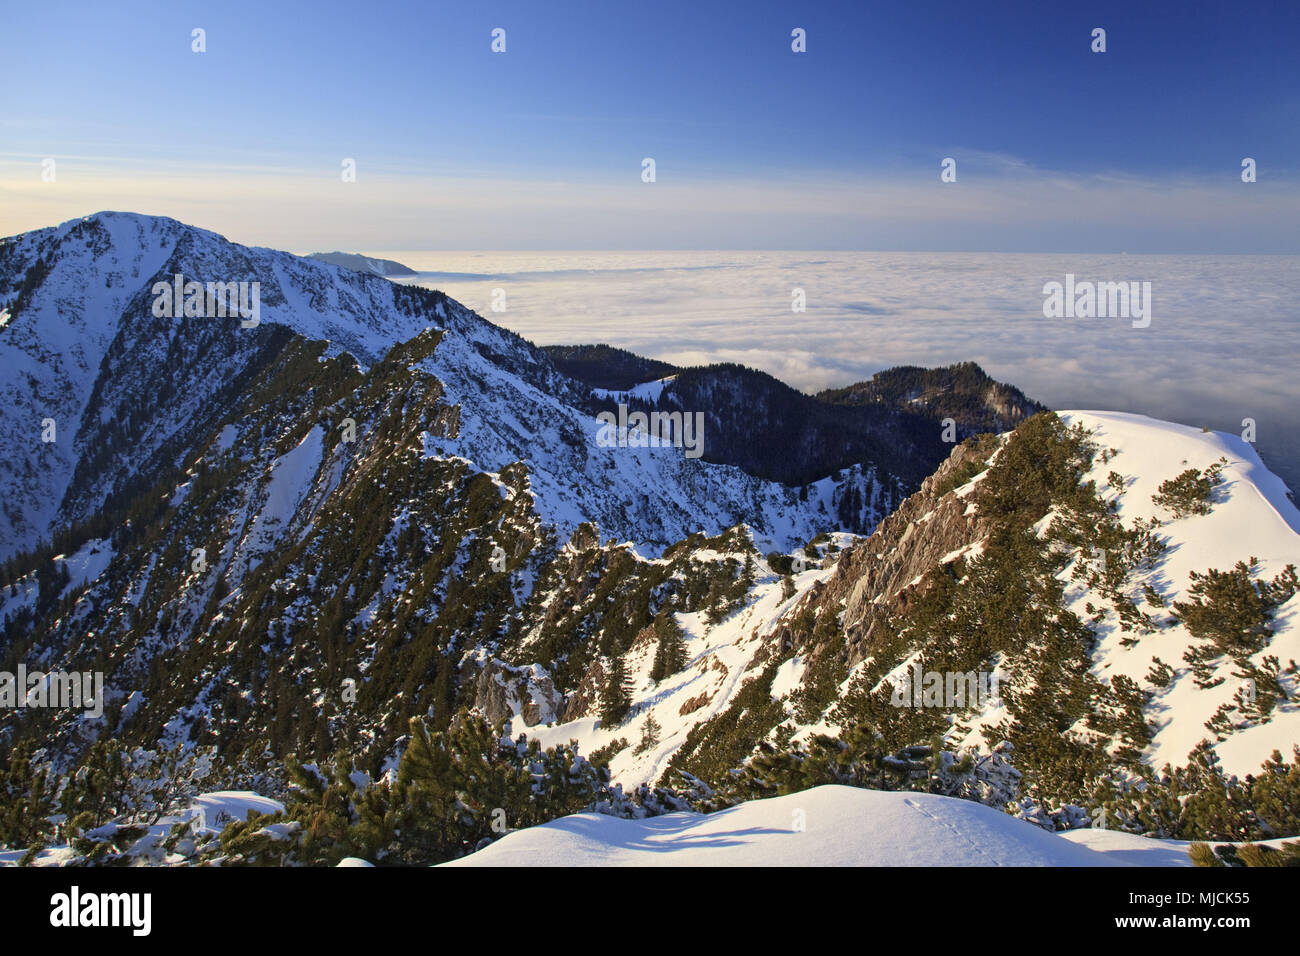 View from mountain Herzogstand to Heimgarten, Bavarian Alpine Foreland, Alpine foreland, alps, Bavarian uplands, Upper Bavaria, Bavaria, South Germany, Germany, - Stock Image